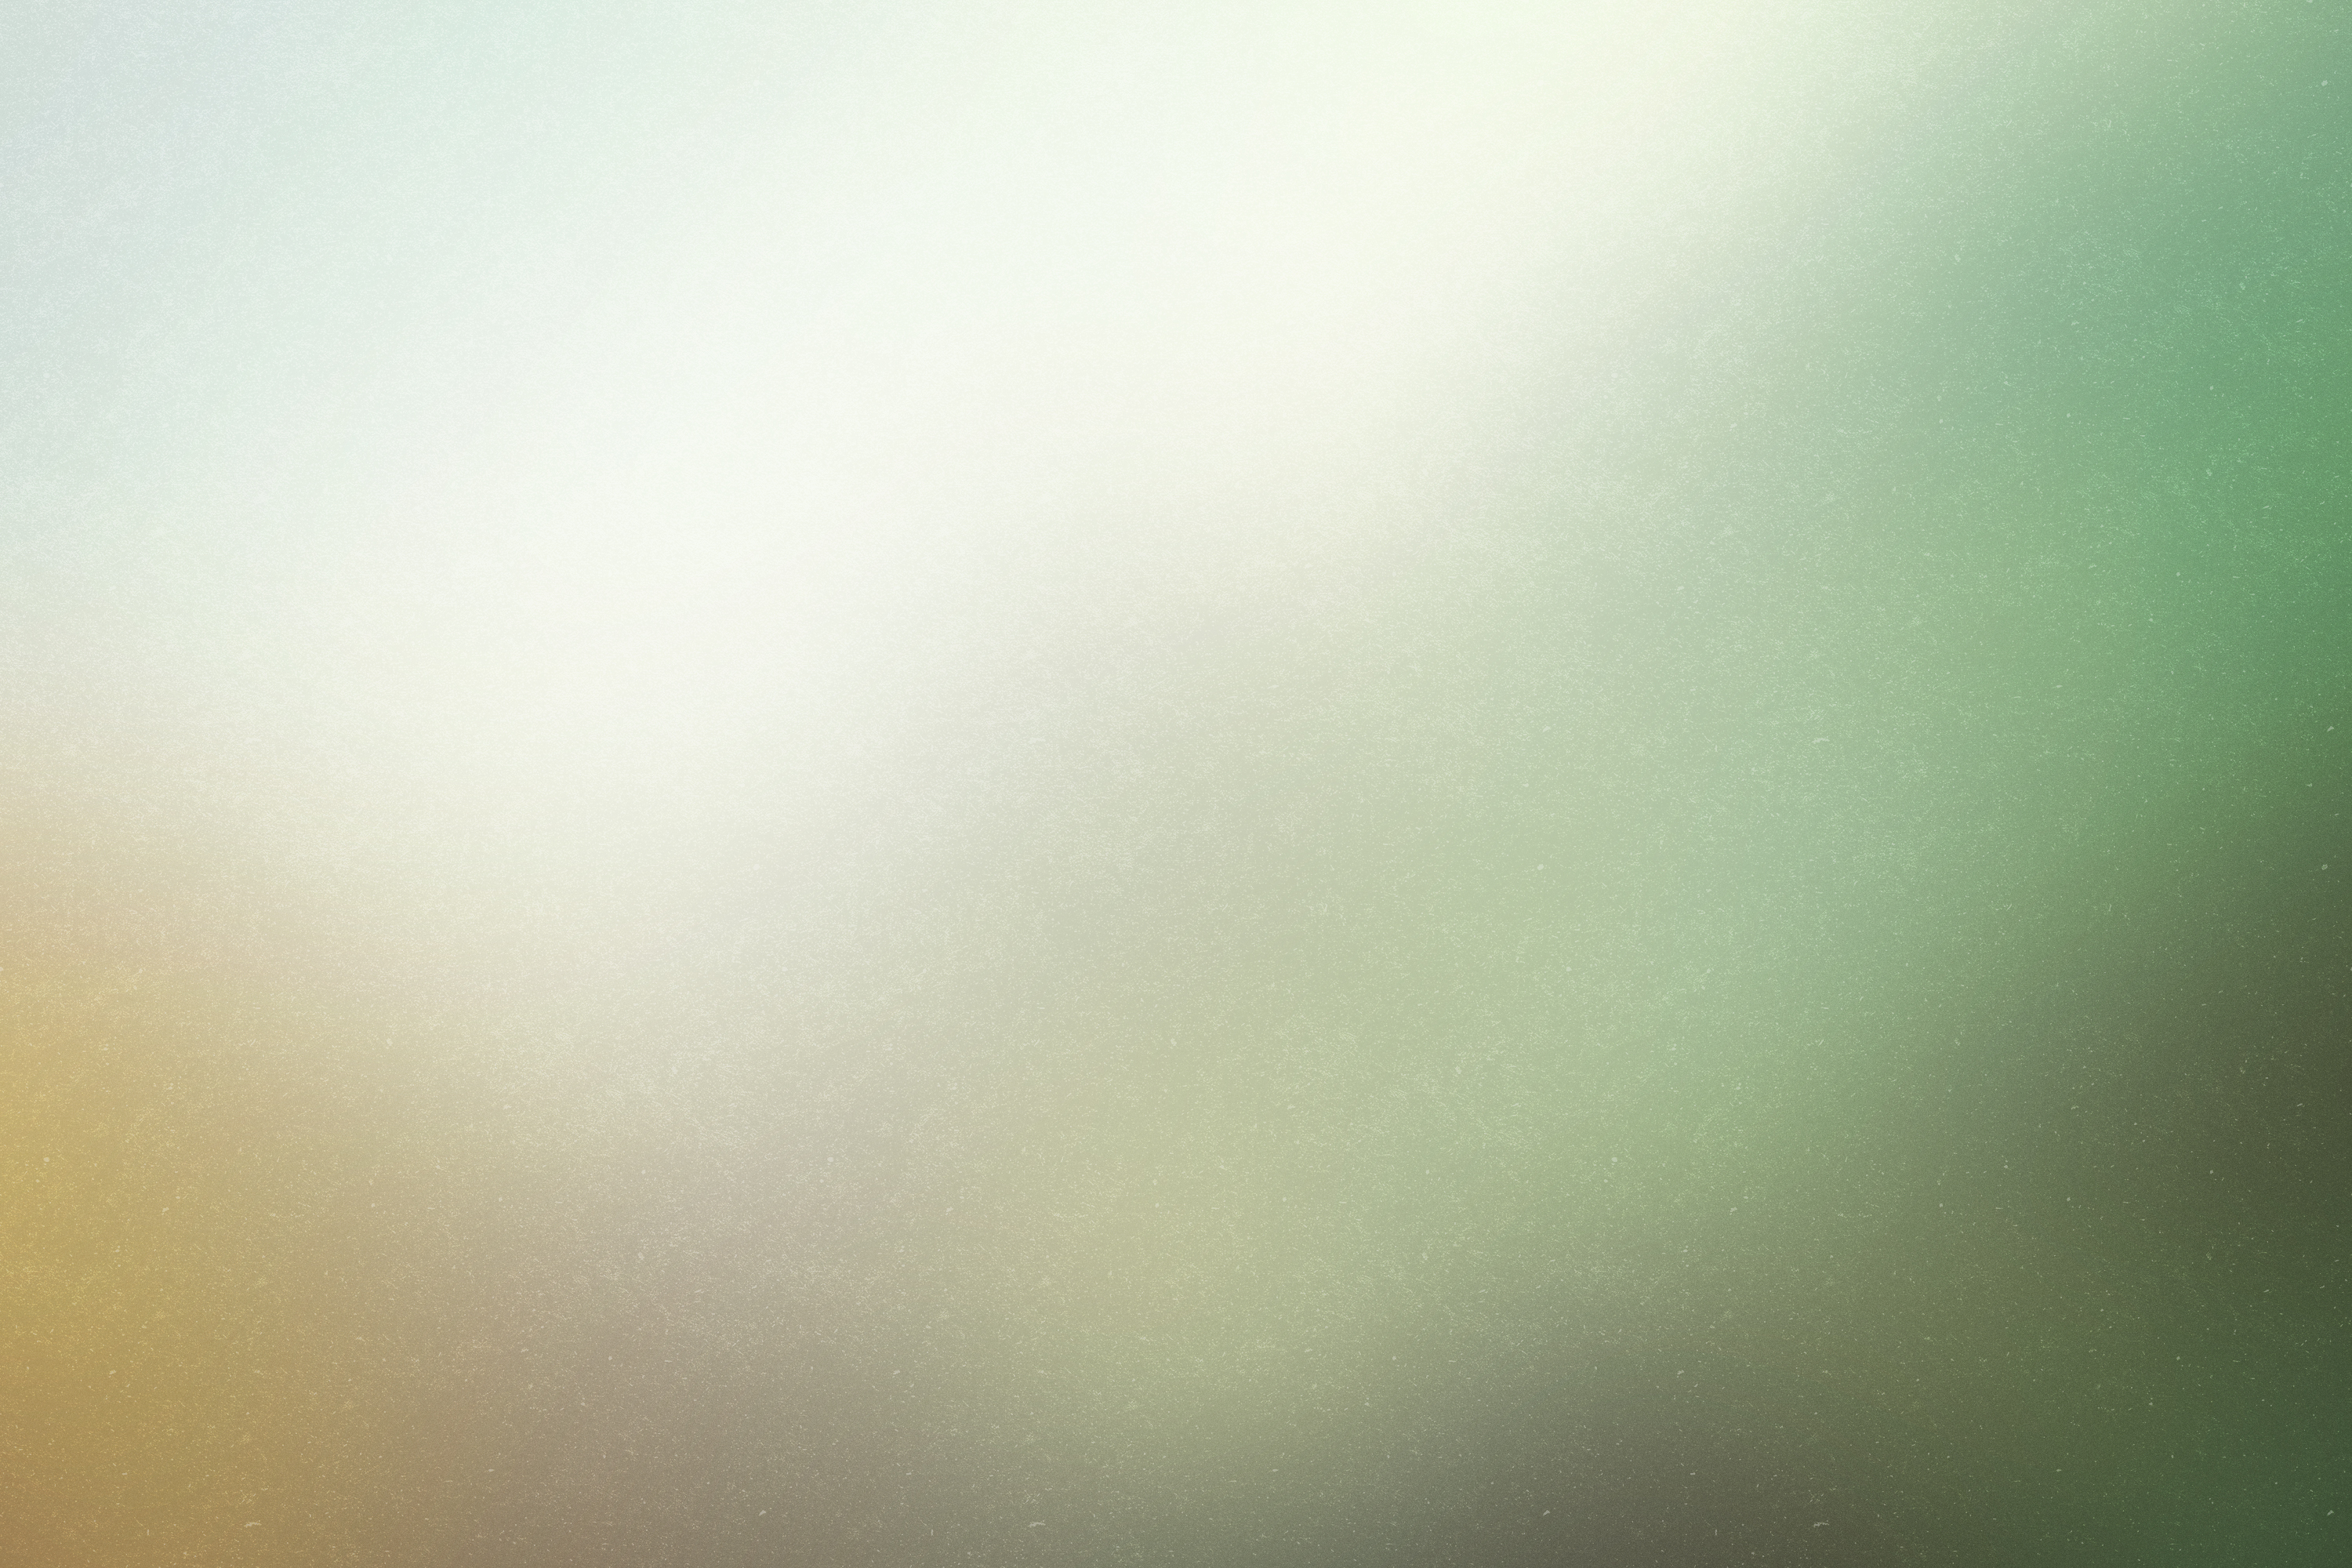 blurred_vintage_background_006